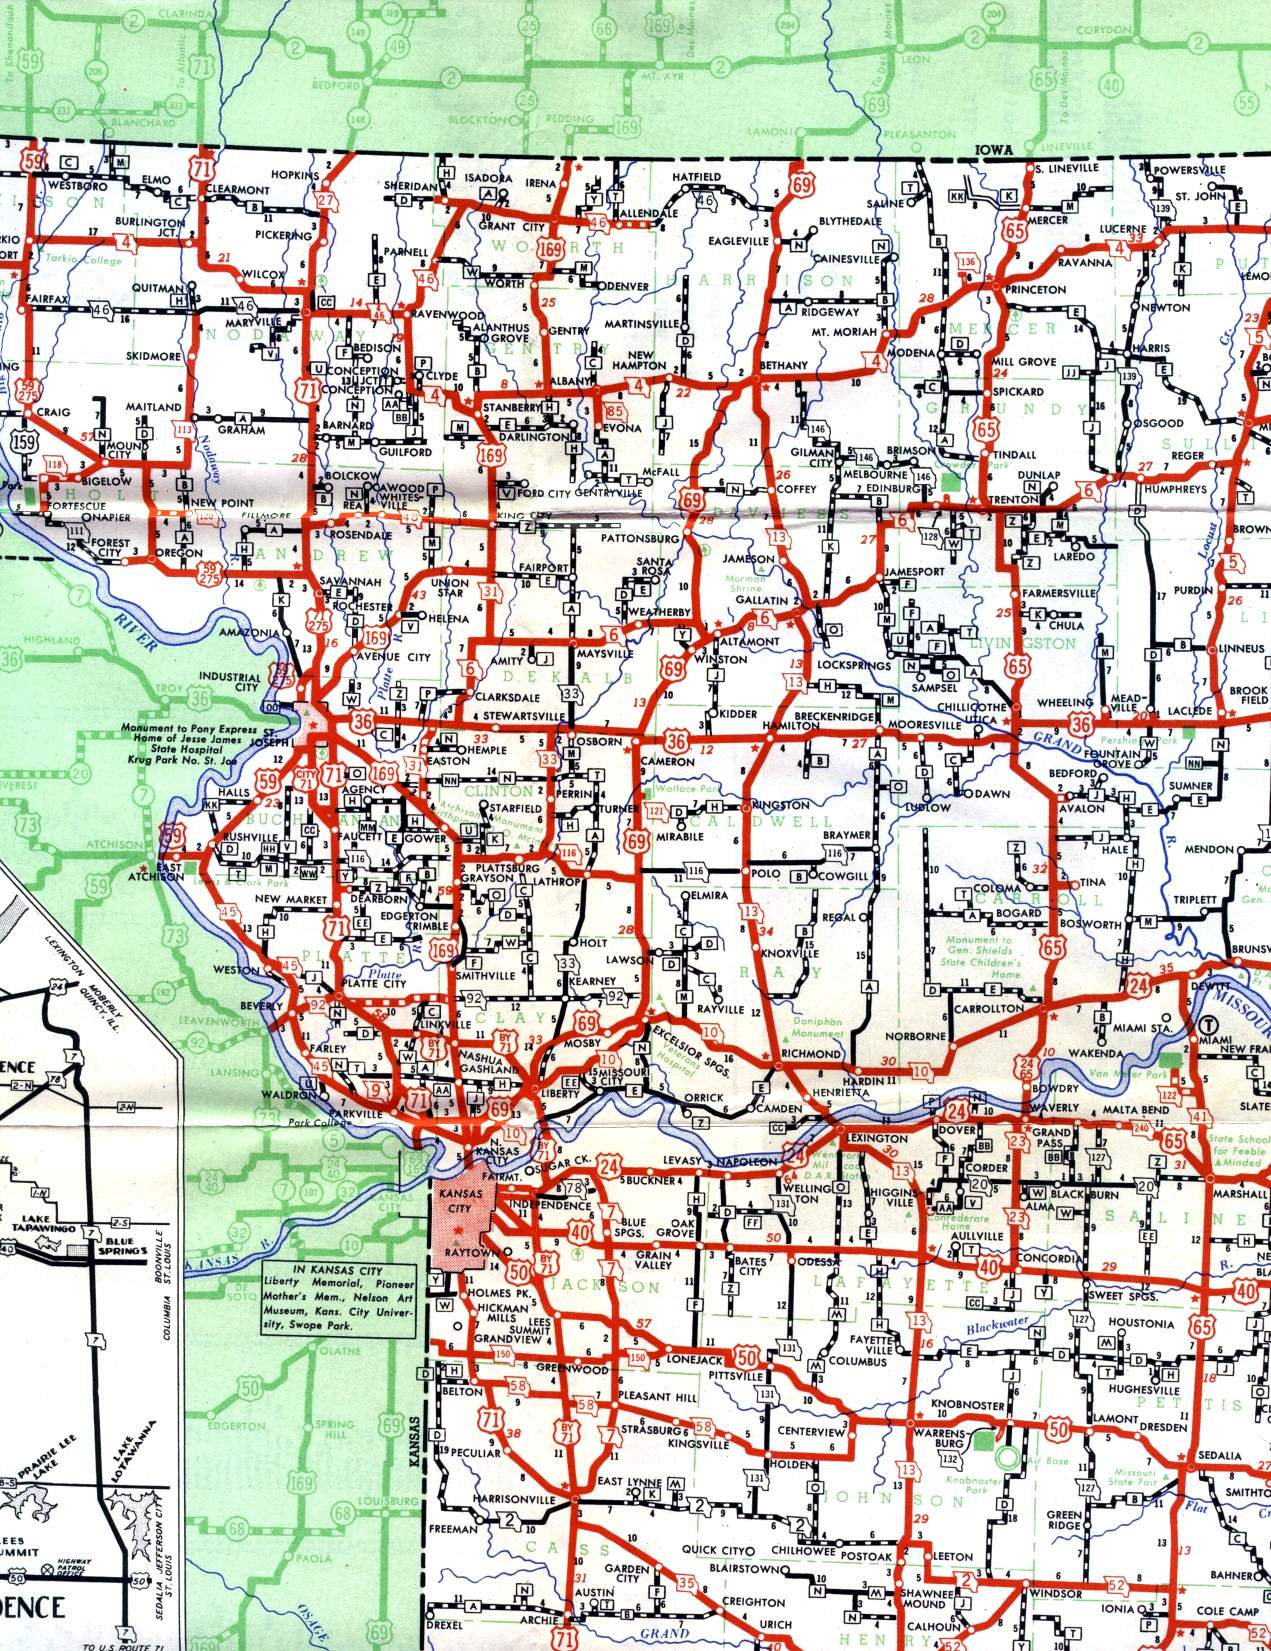 Northwest Missouri Map.Missouri Highways Unofficial Section Of 1950 Official Highway Map